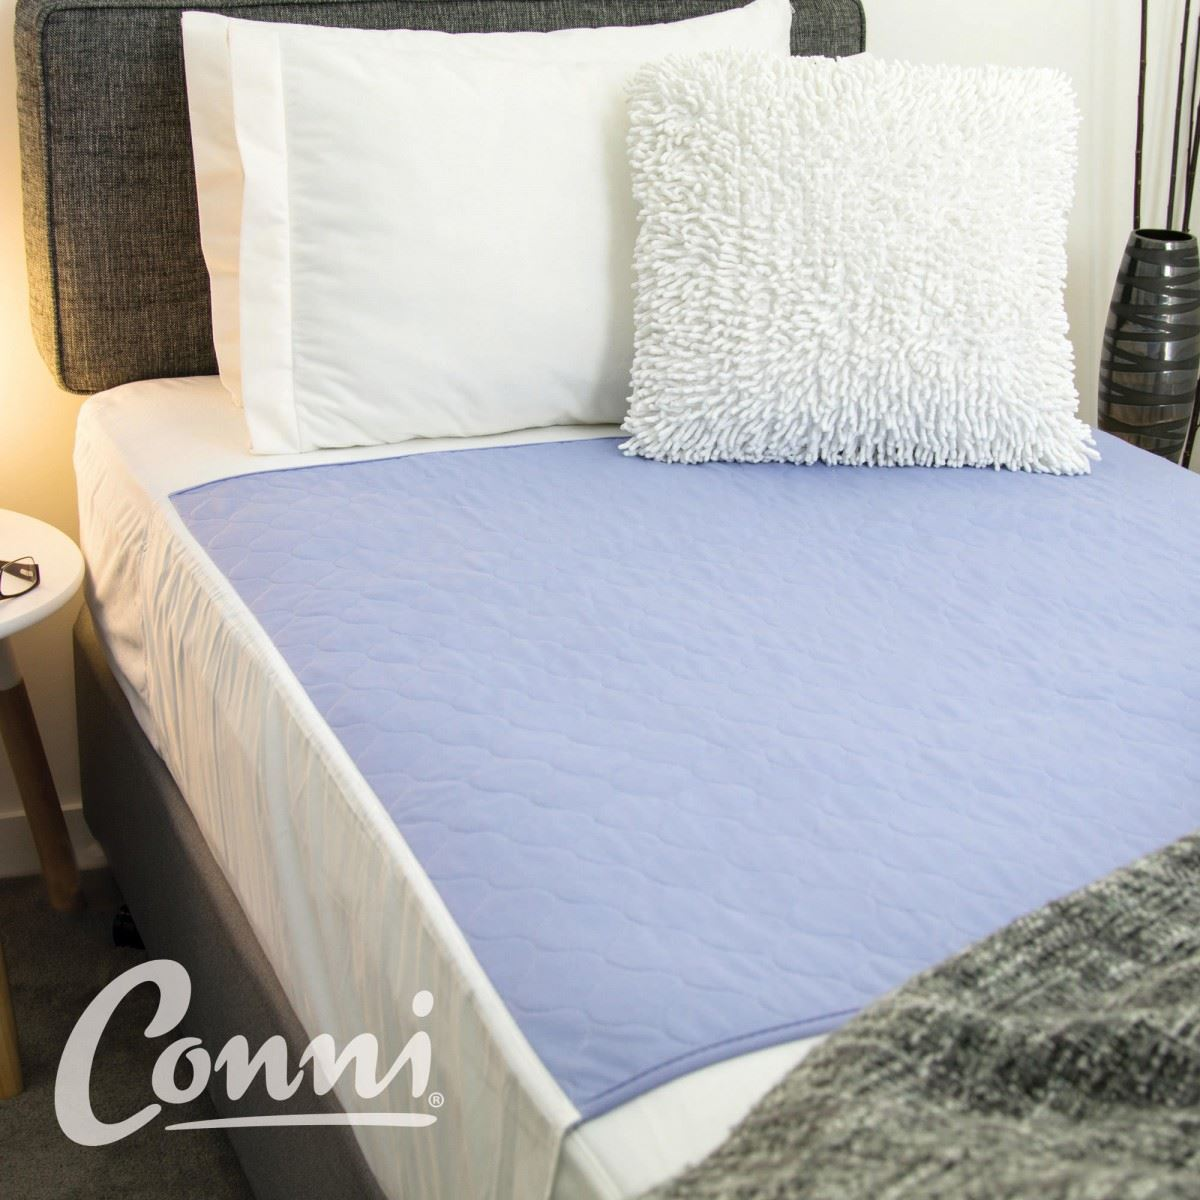 Picture of Conni Kids Bed Pad with Tuck-ins